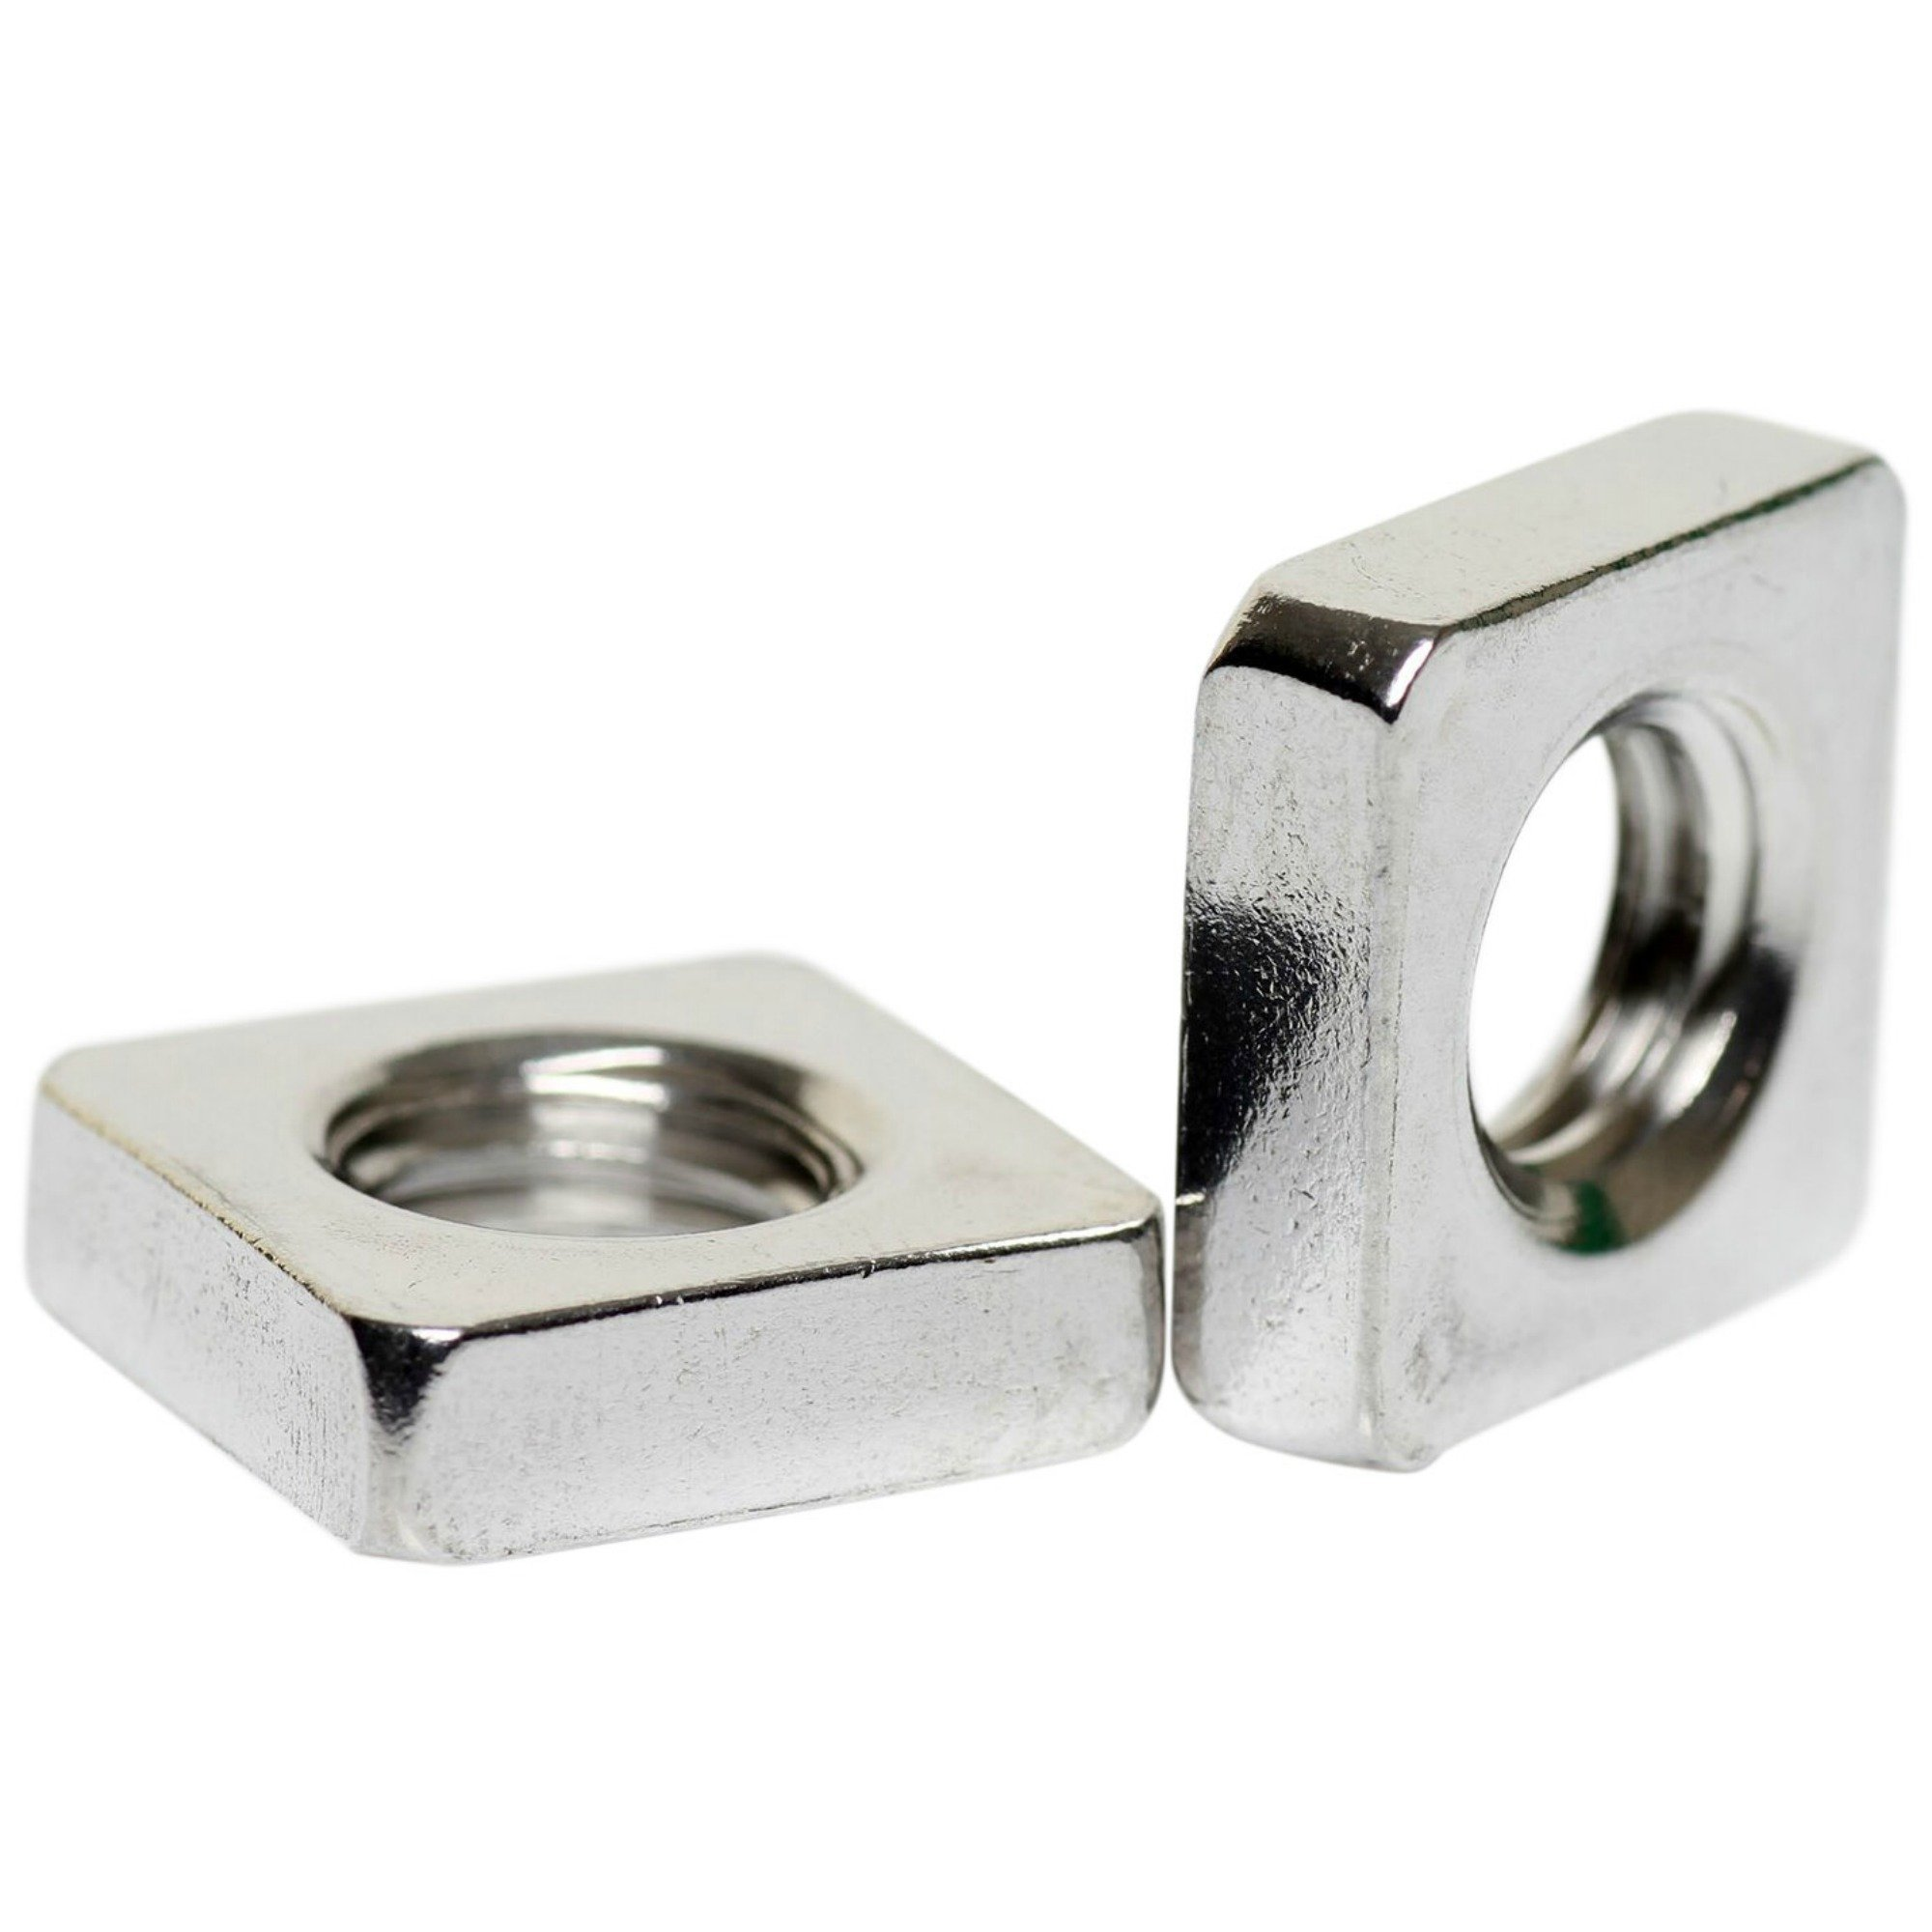 A2 Stainless Steel Square Nuts Thin Type DIN 562 M3 - 100 Pack